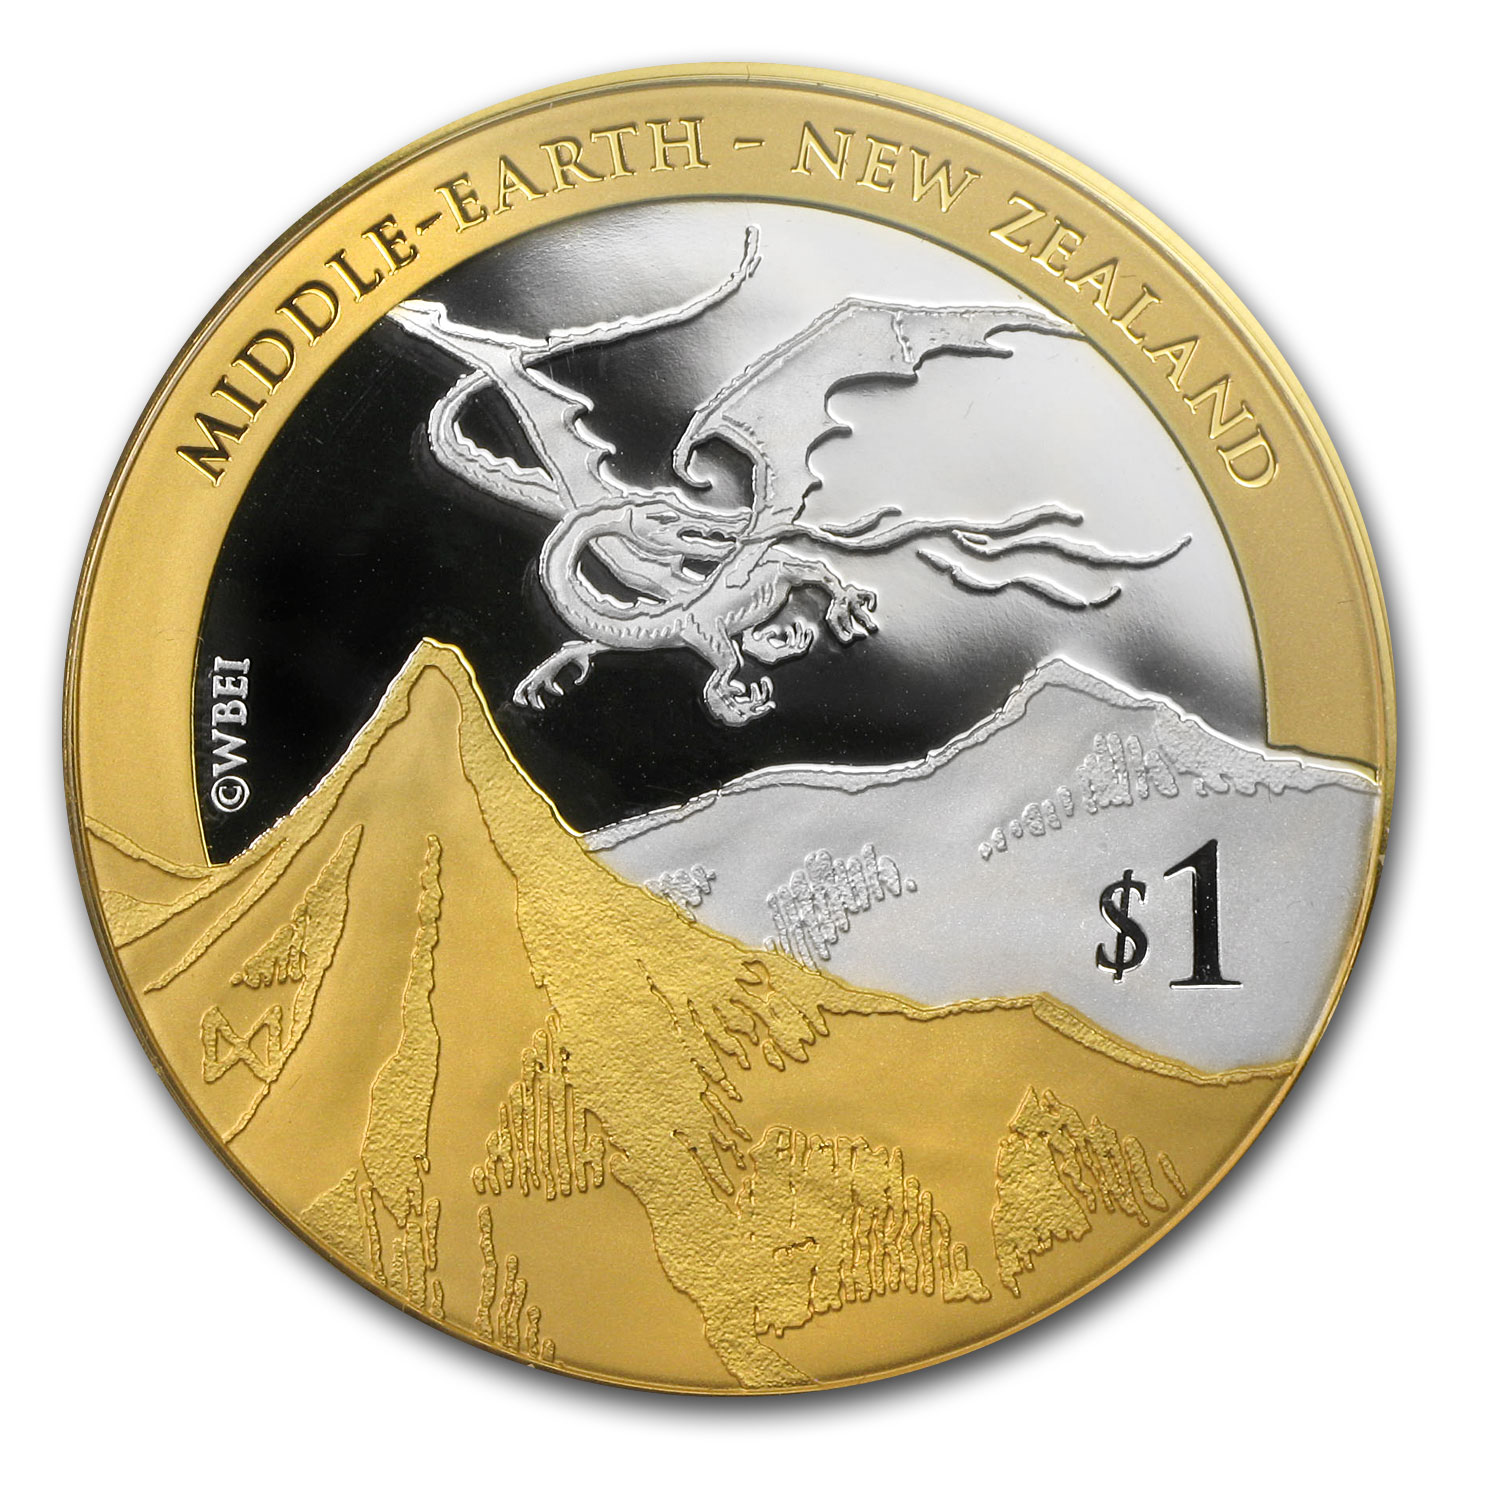 2013 New Zealand 1 oz Silver $1 Desolation of Smaug (Gold Plated)